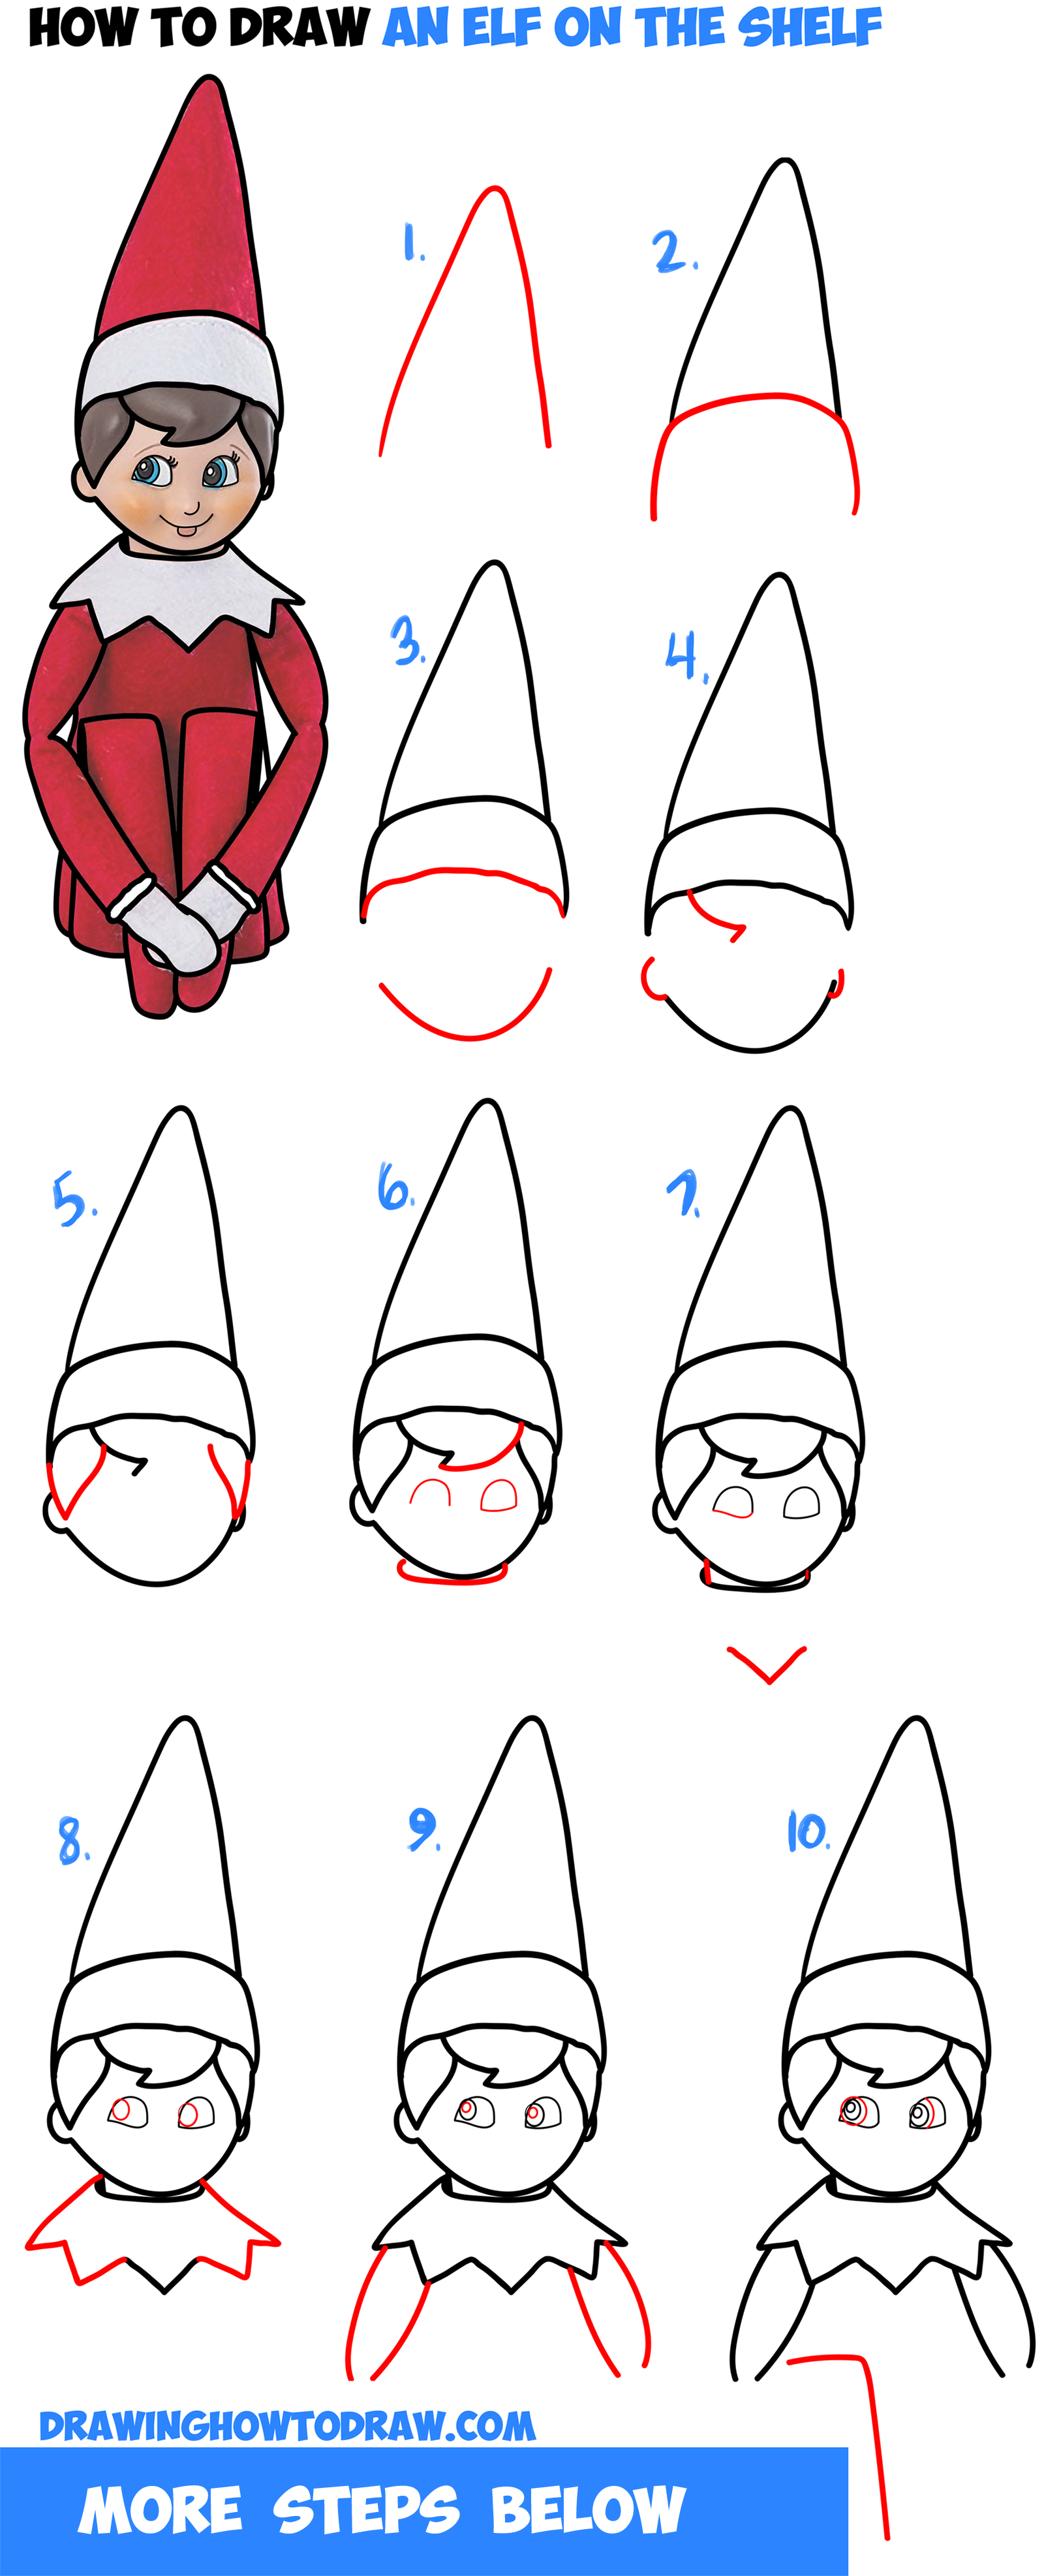 How to Draw The Elf On The Shelf Easy Step by Step Drawing ...